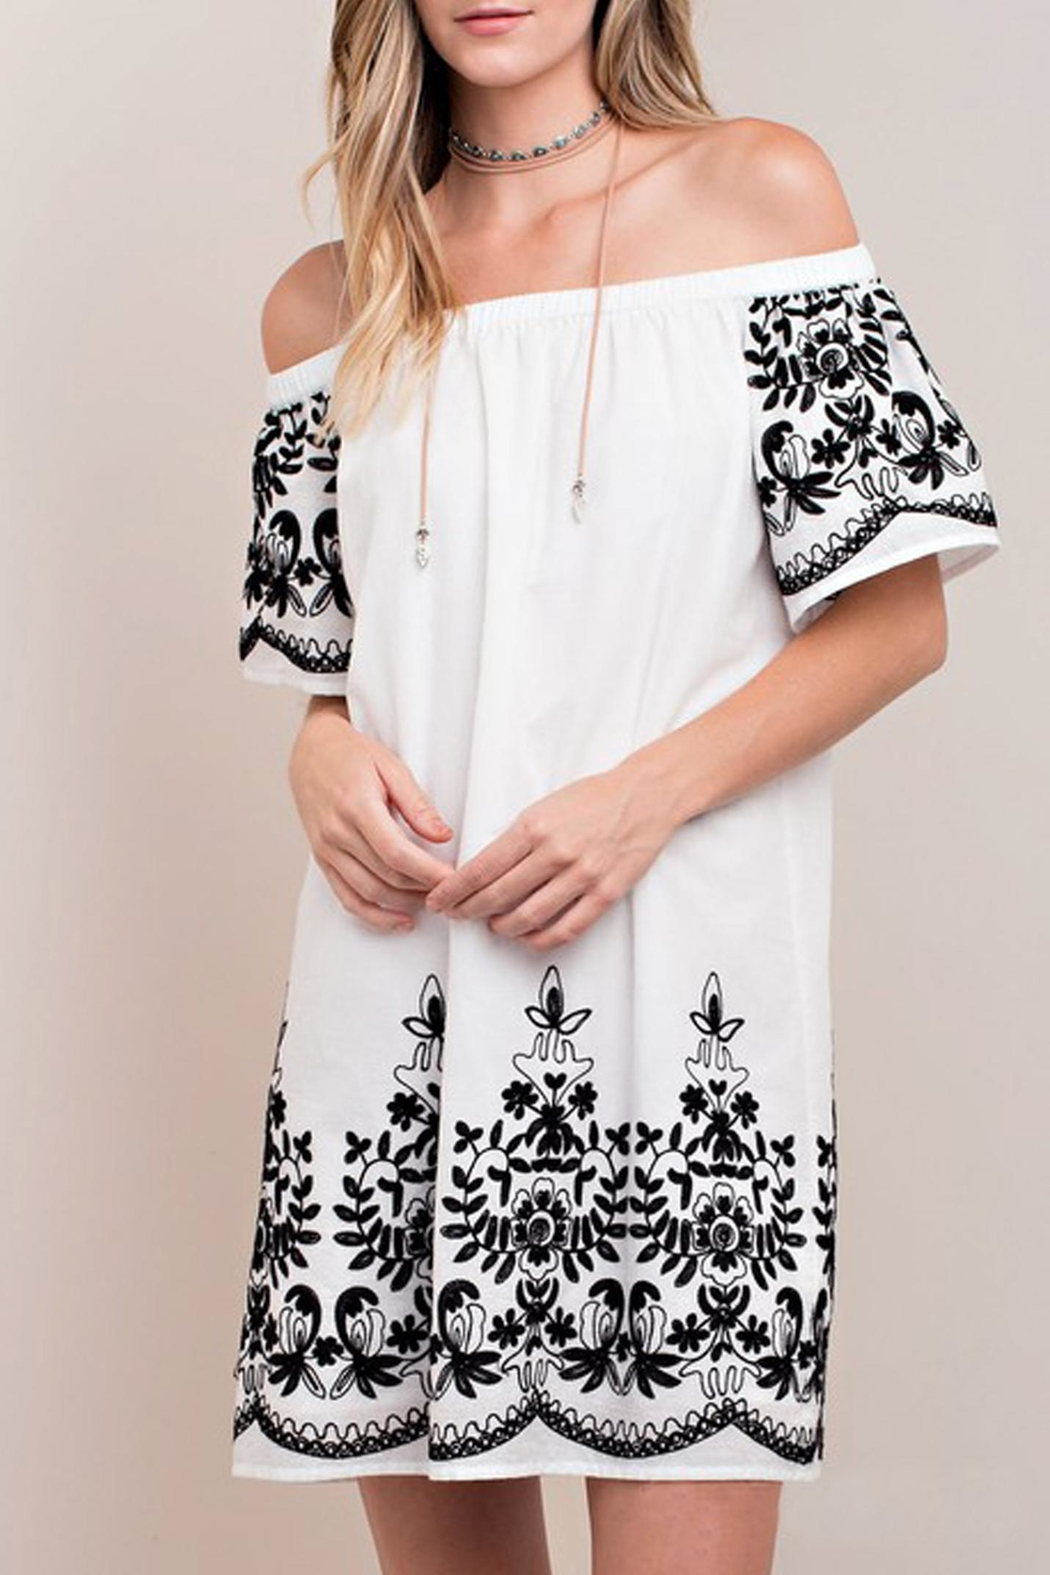 KORI AMERICA White Embroidered Dress - Main Image